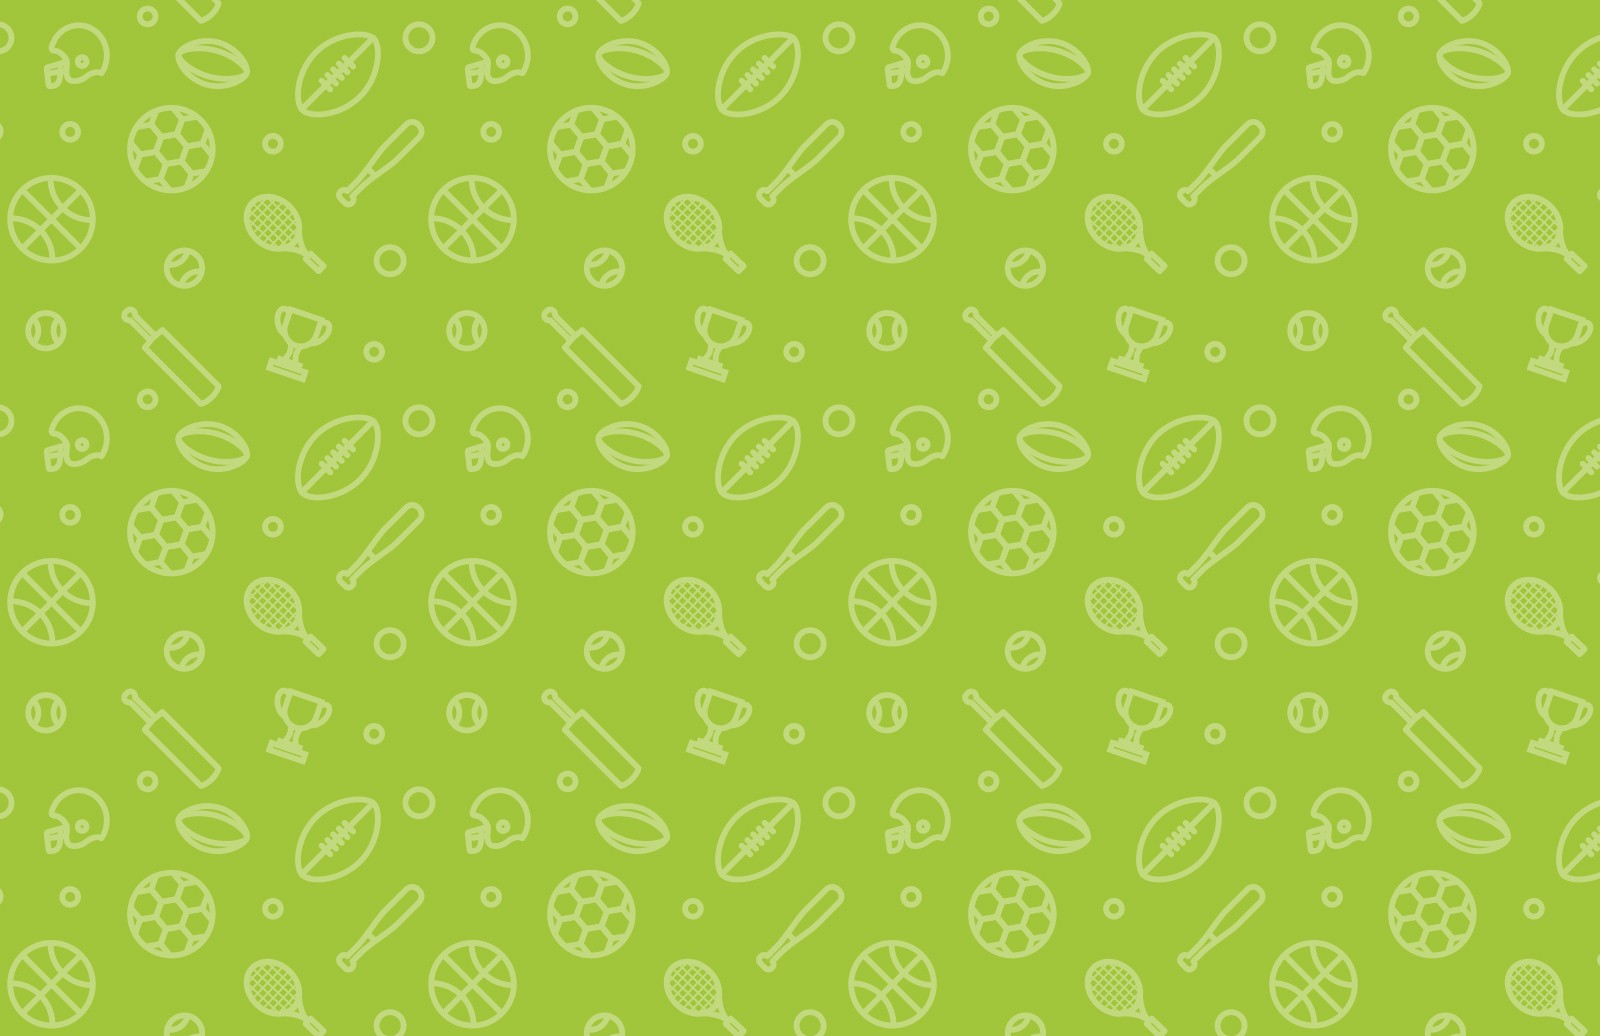 Seamless Icon Patterns 2